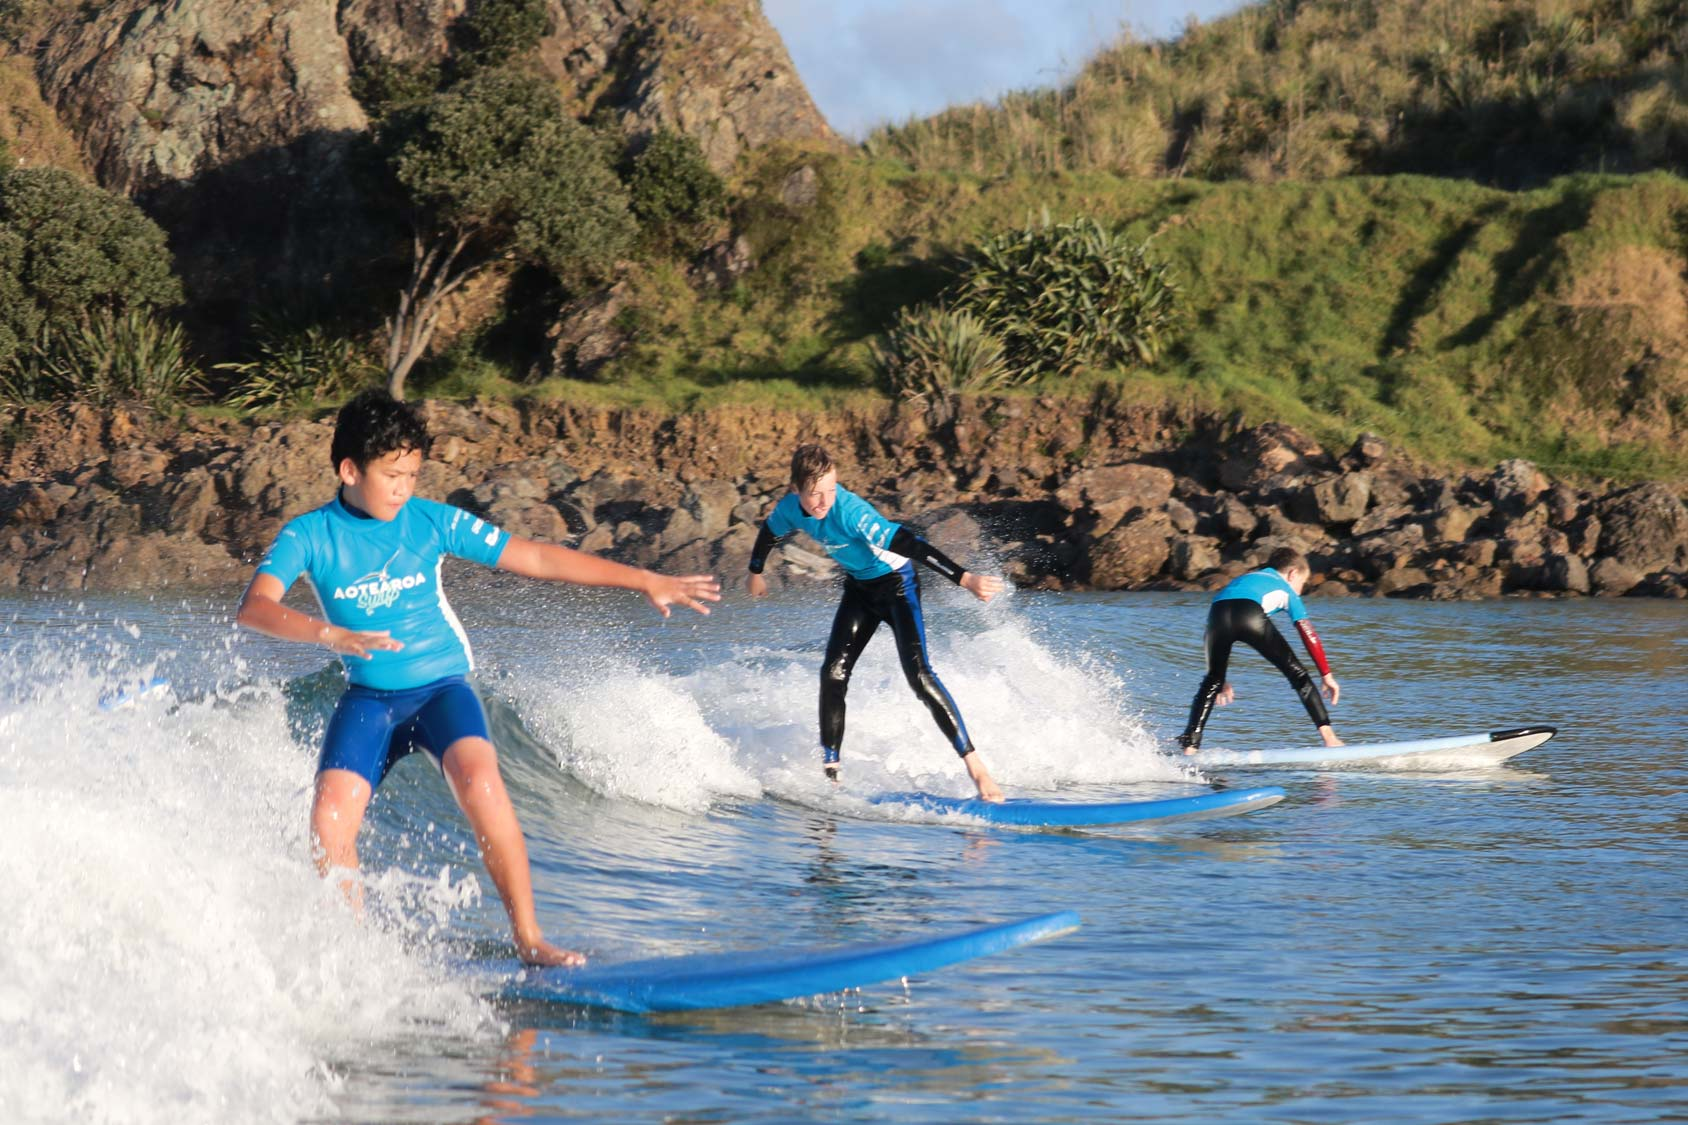 The ultimate summer surf camp with Aotearoa Surf